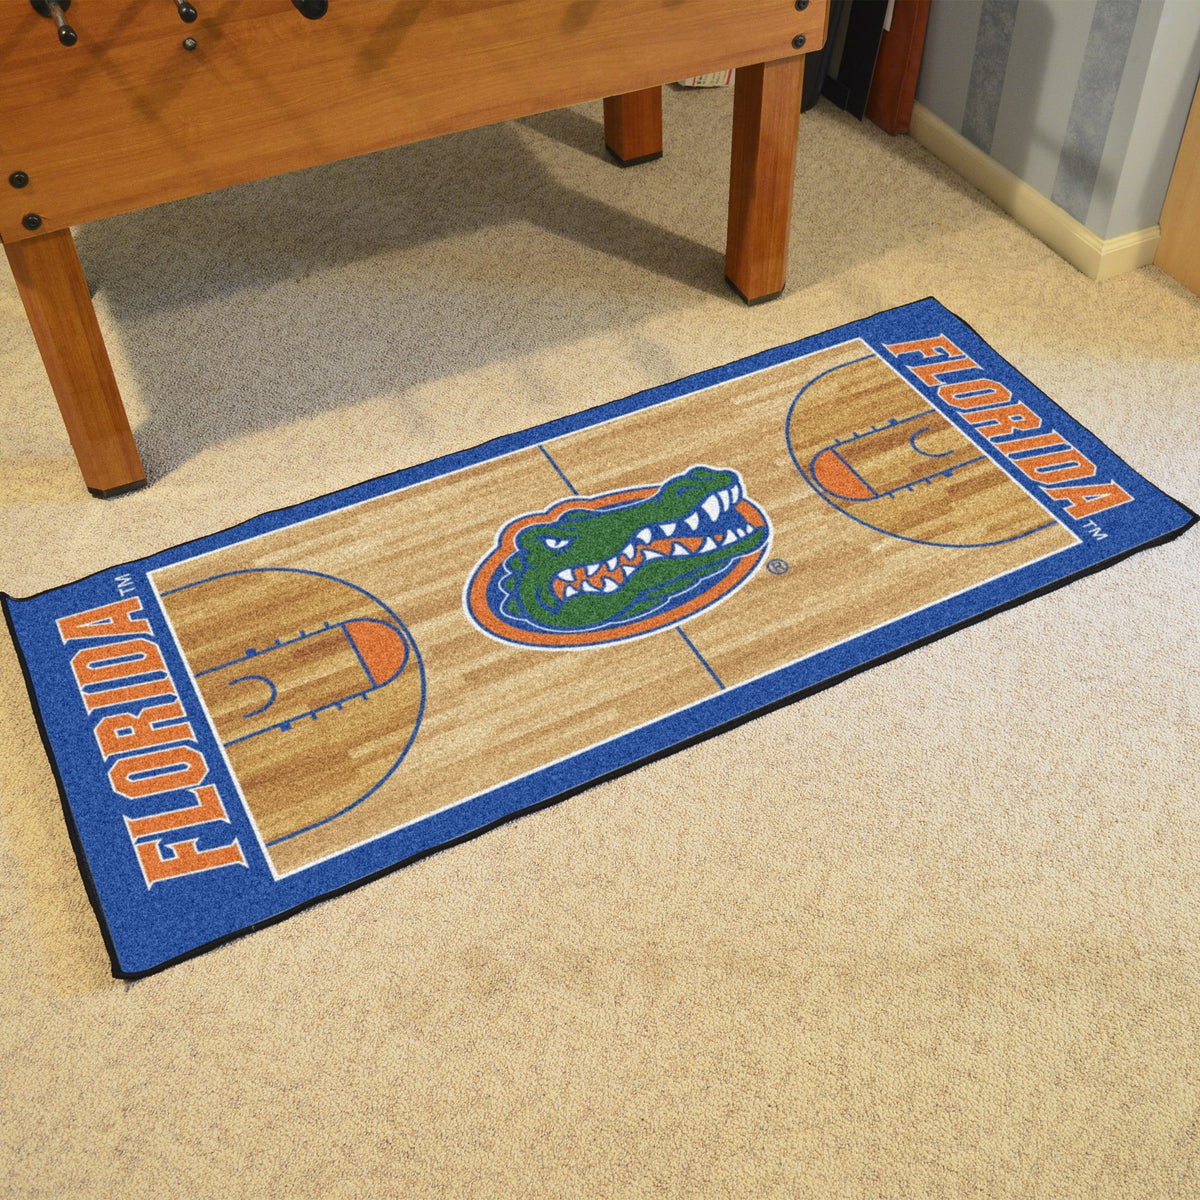 Collegiate - NCAA Basketball Runner Collegiate Mats, Rectangular Mats, NCAA Basketball Runner, Collegiate, Home Fan Mats Florida